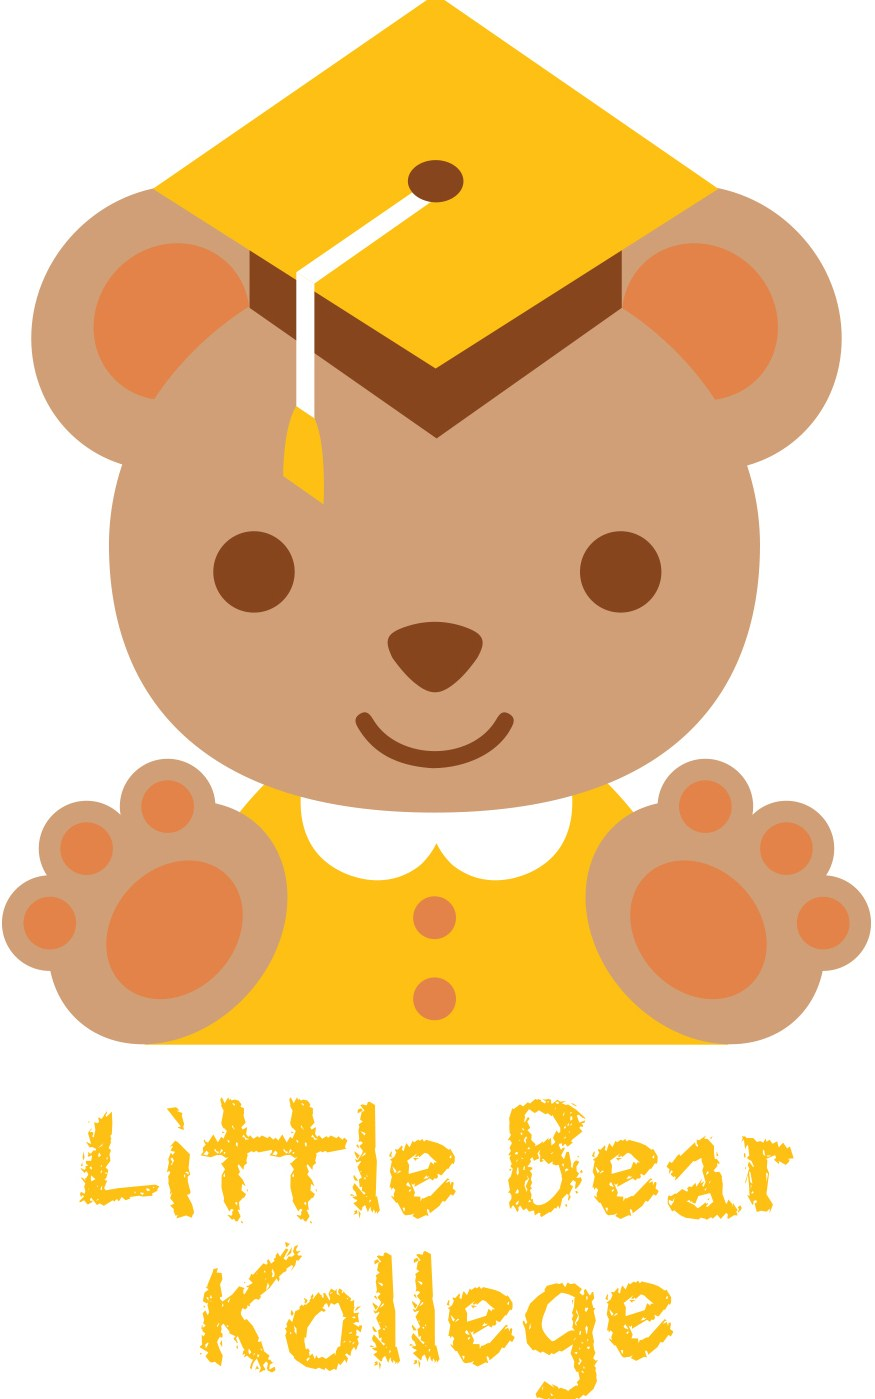 Little Bear Kollege Preschool and Learning Center